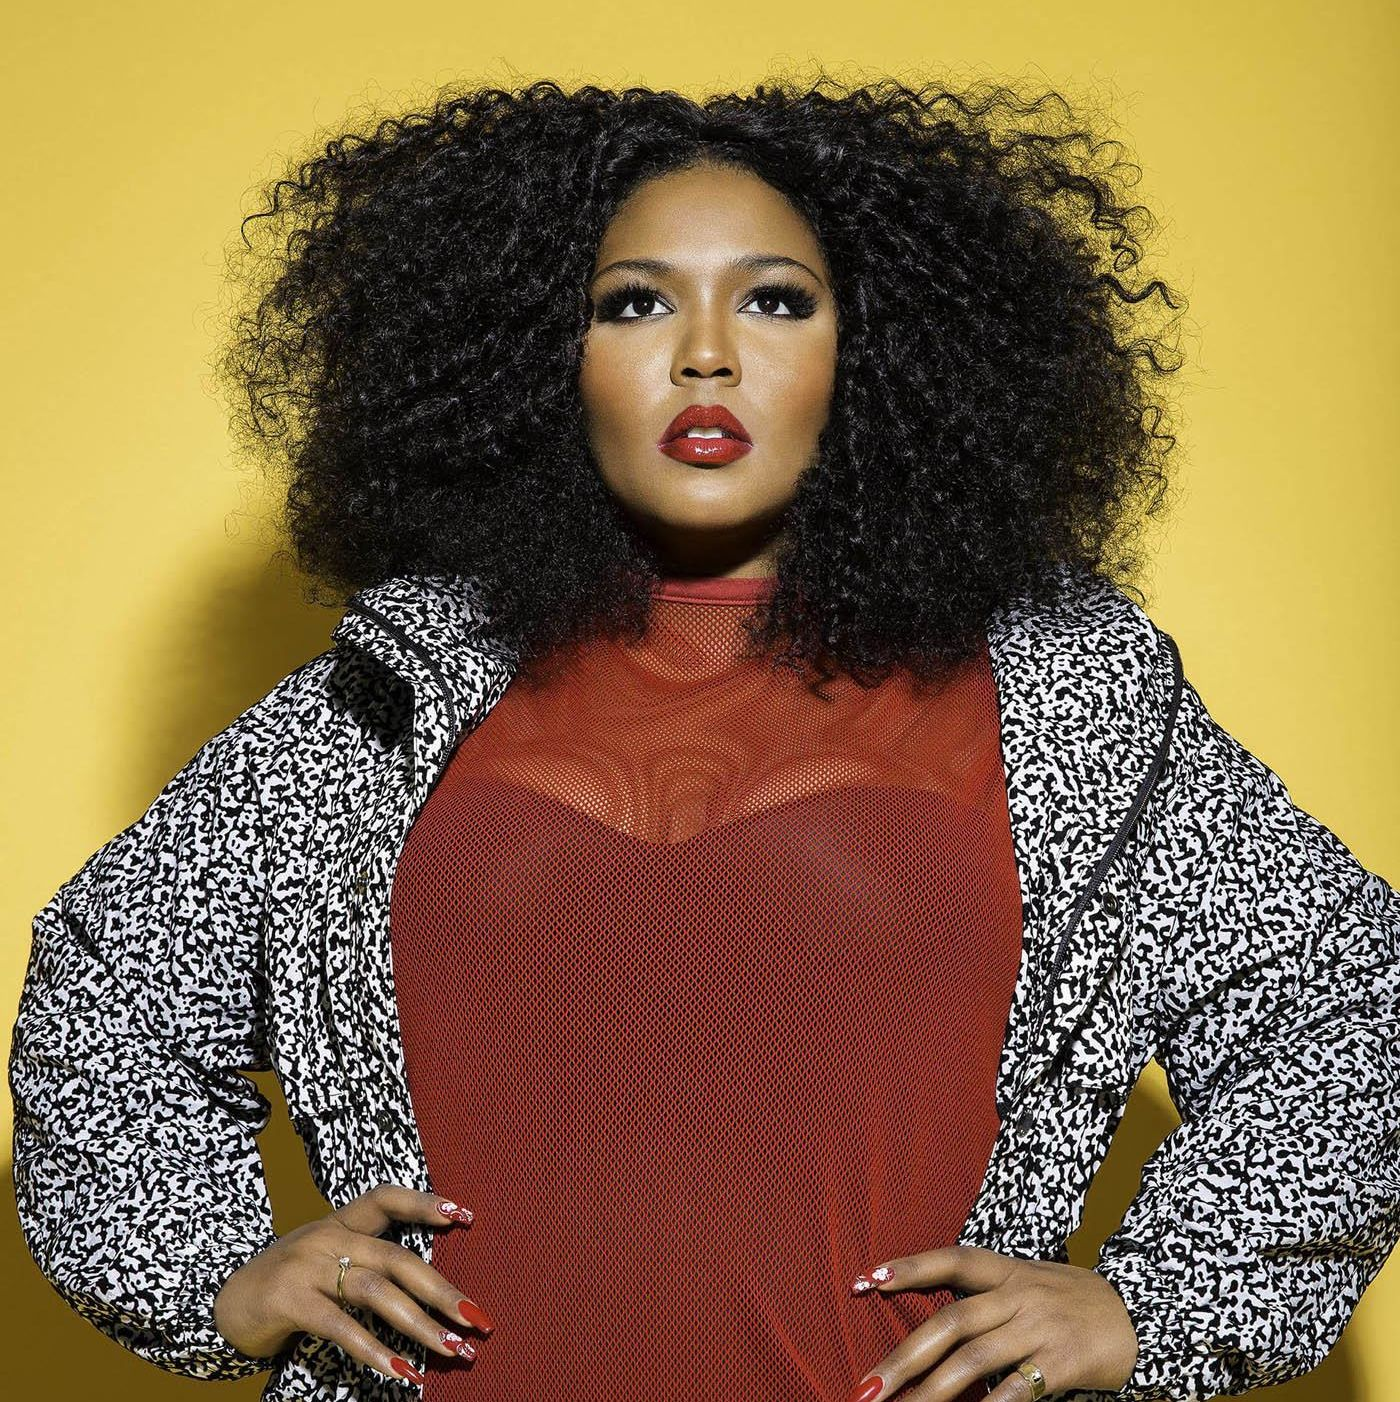 Lizzo press photo new jabari jacobs  guz5gm